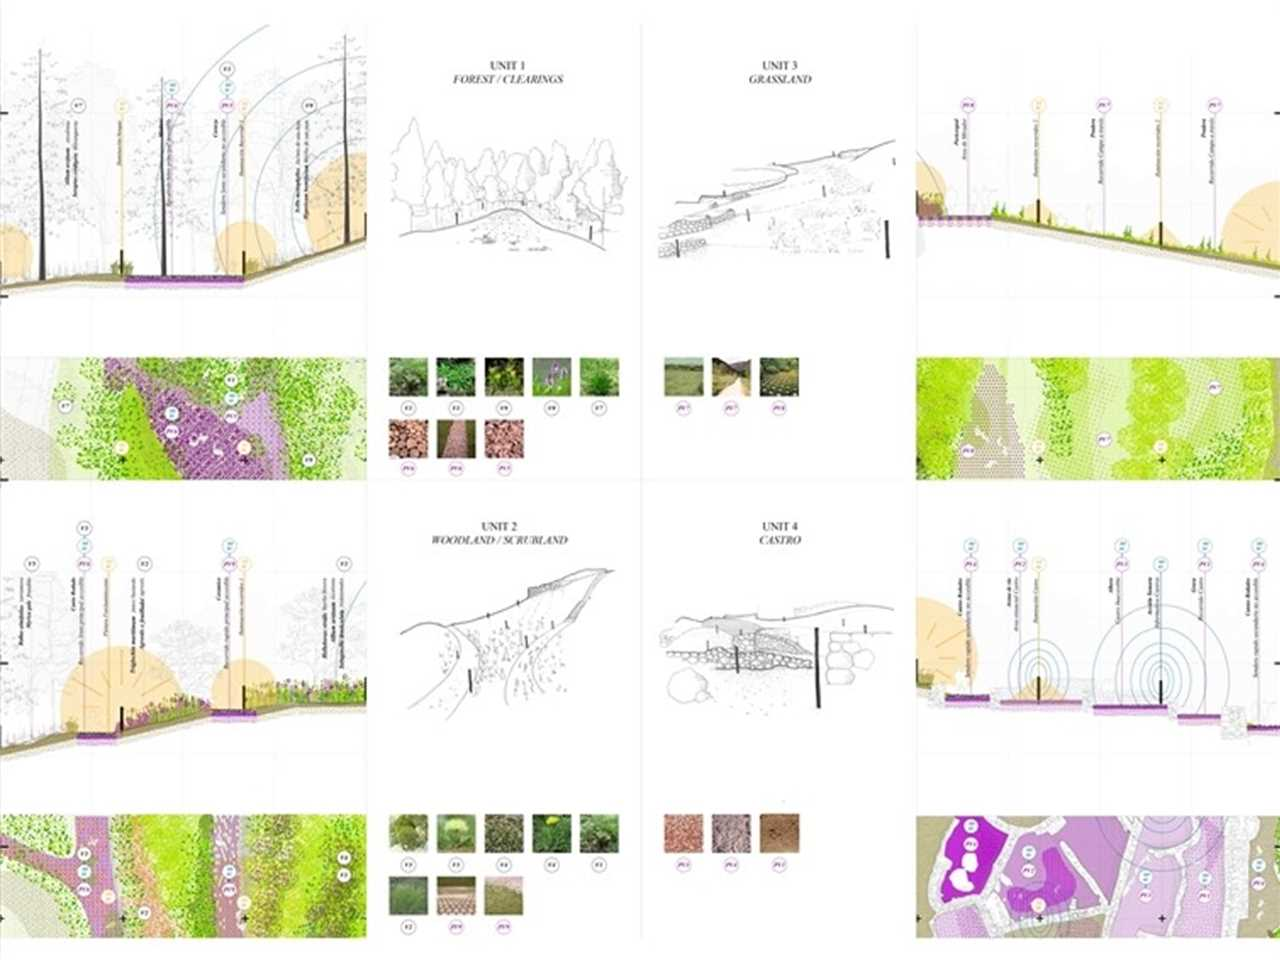 An ecological approach to archaeological sites, Pontevedra, Spain